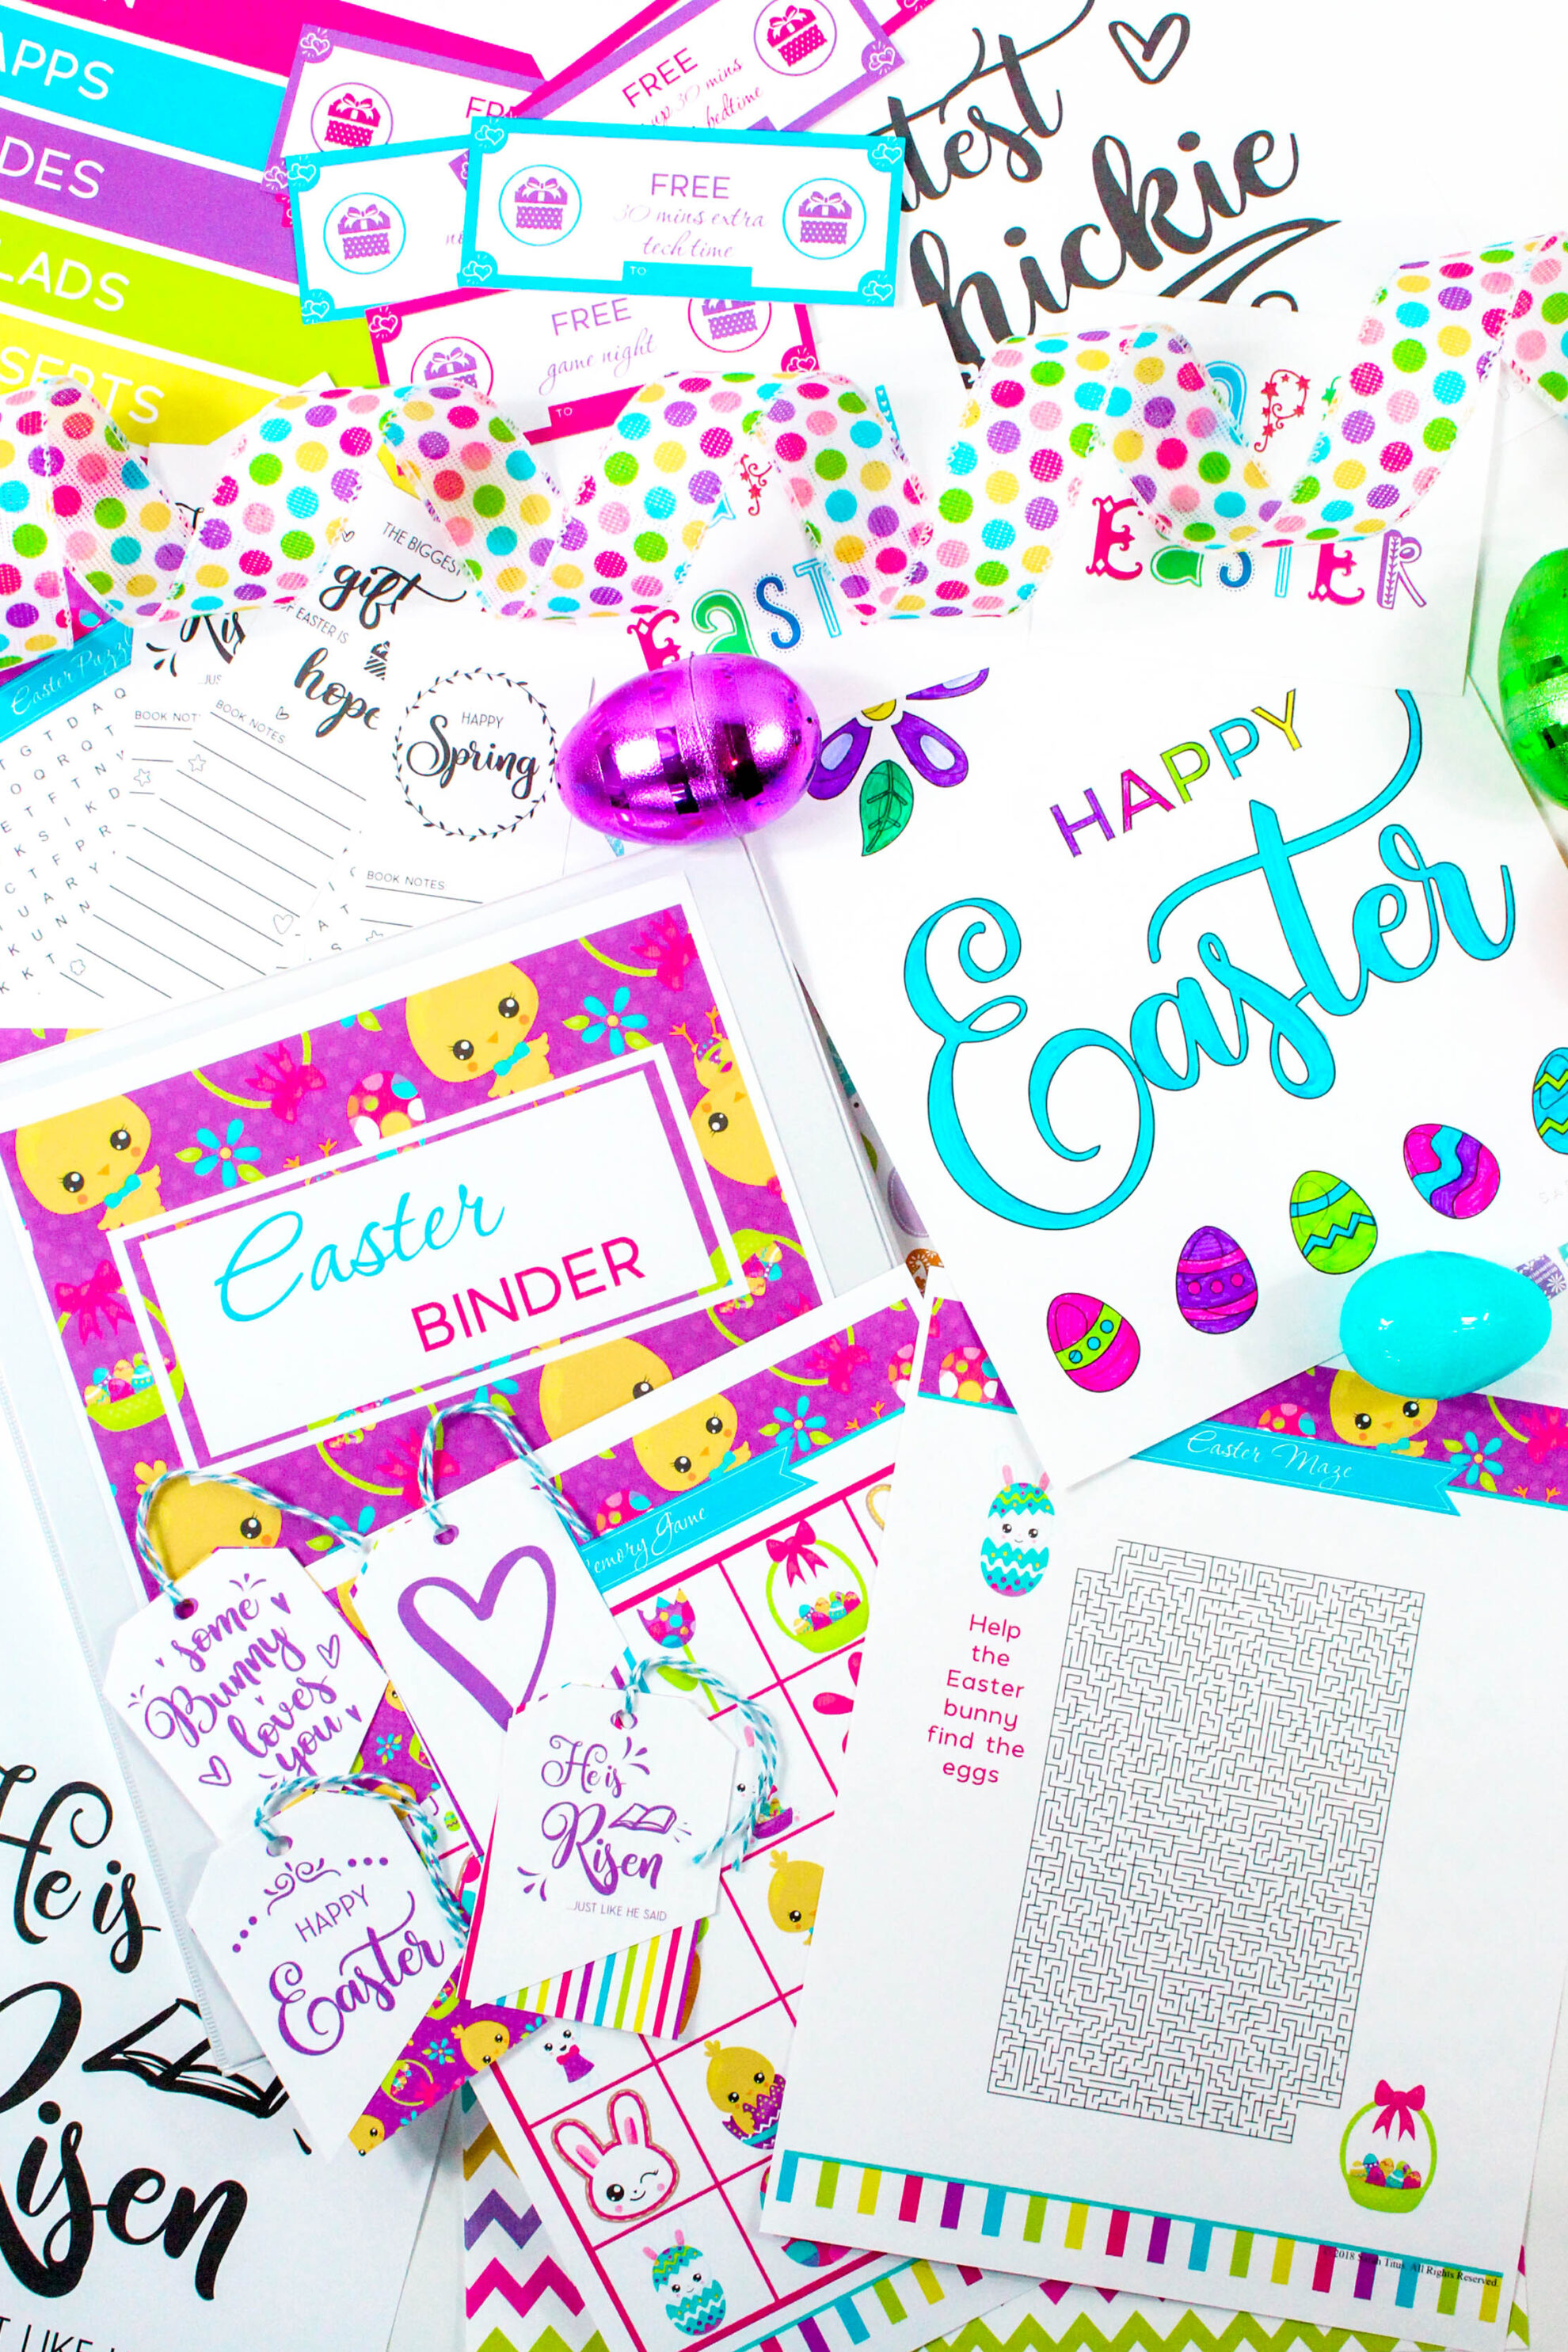 Colorful printables from the Easter binder Series